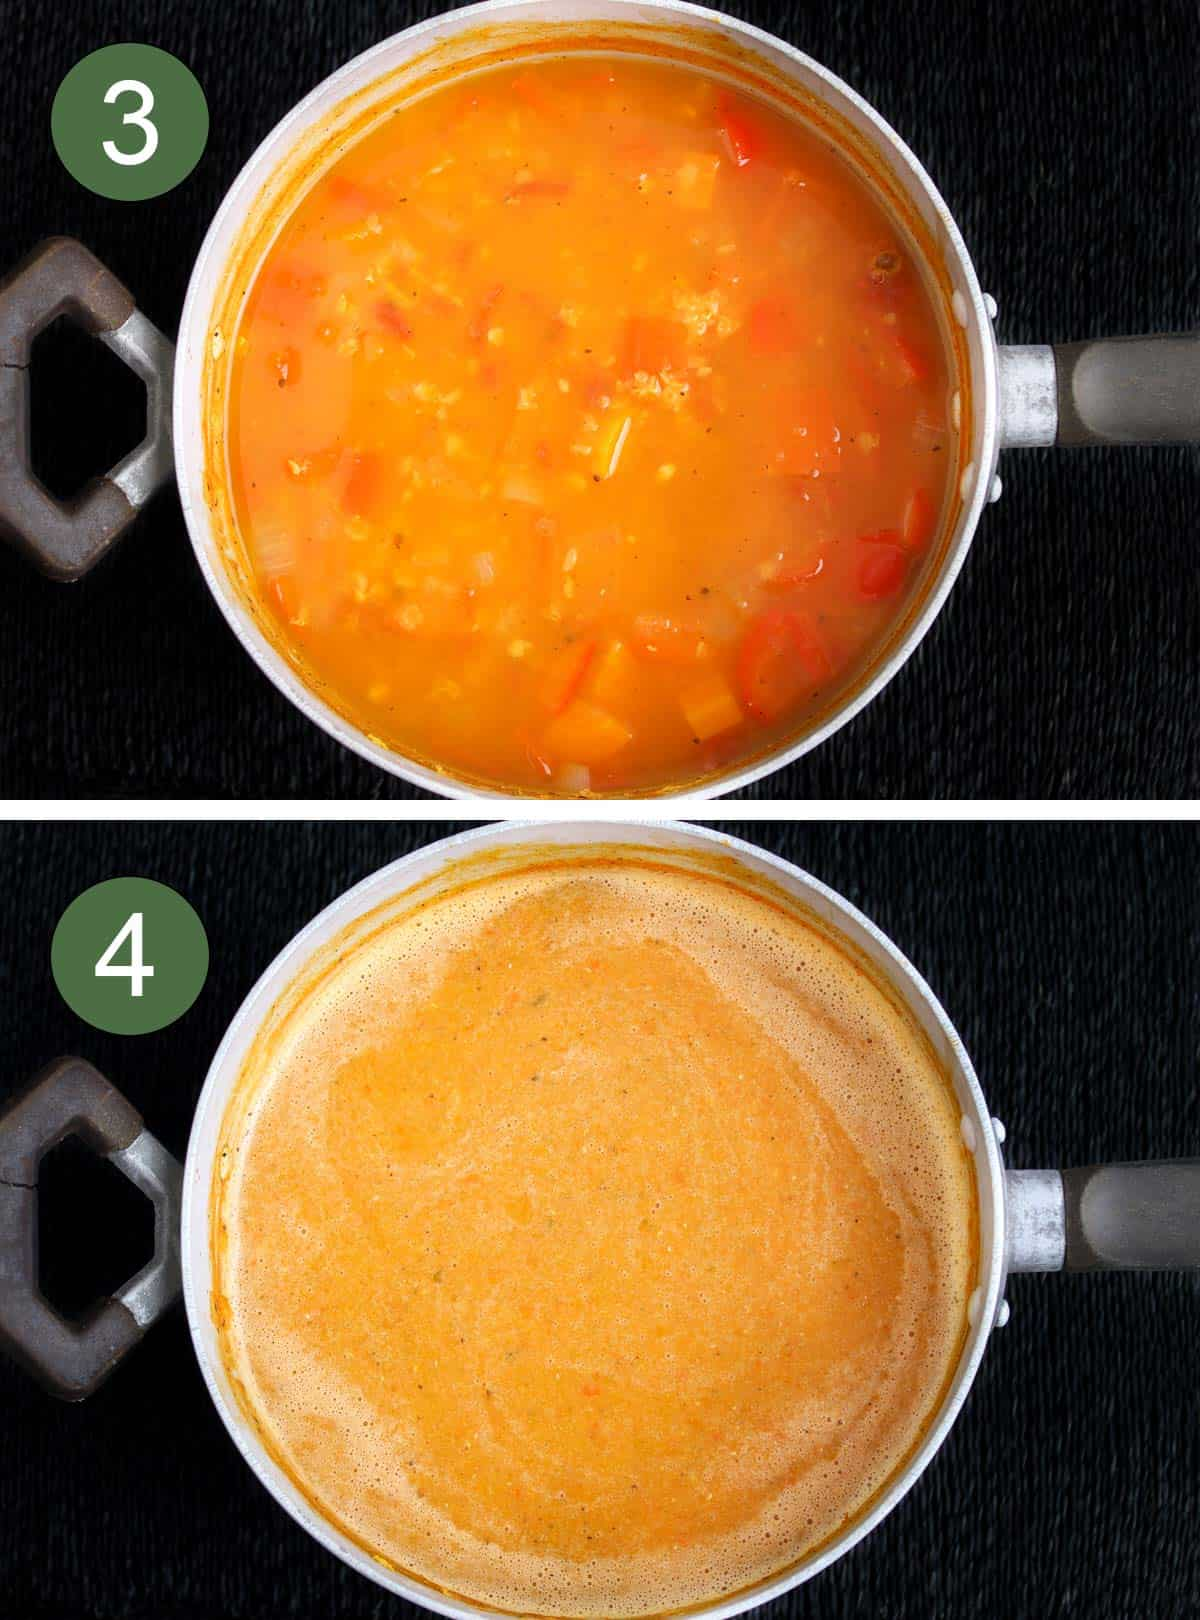 Red Pepper and Lentil Soup Before and After Blending